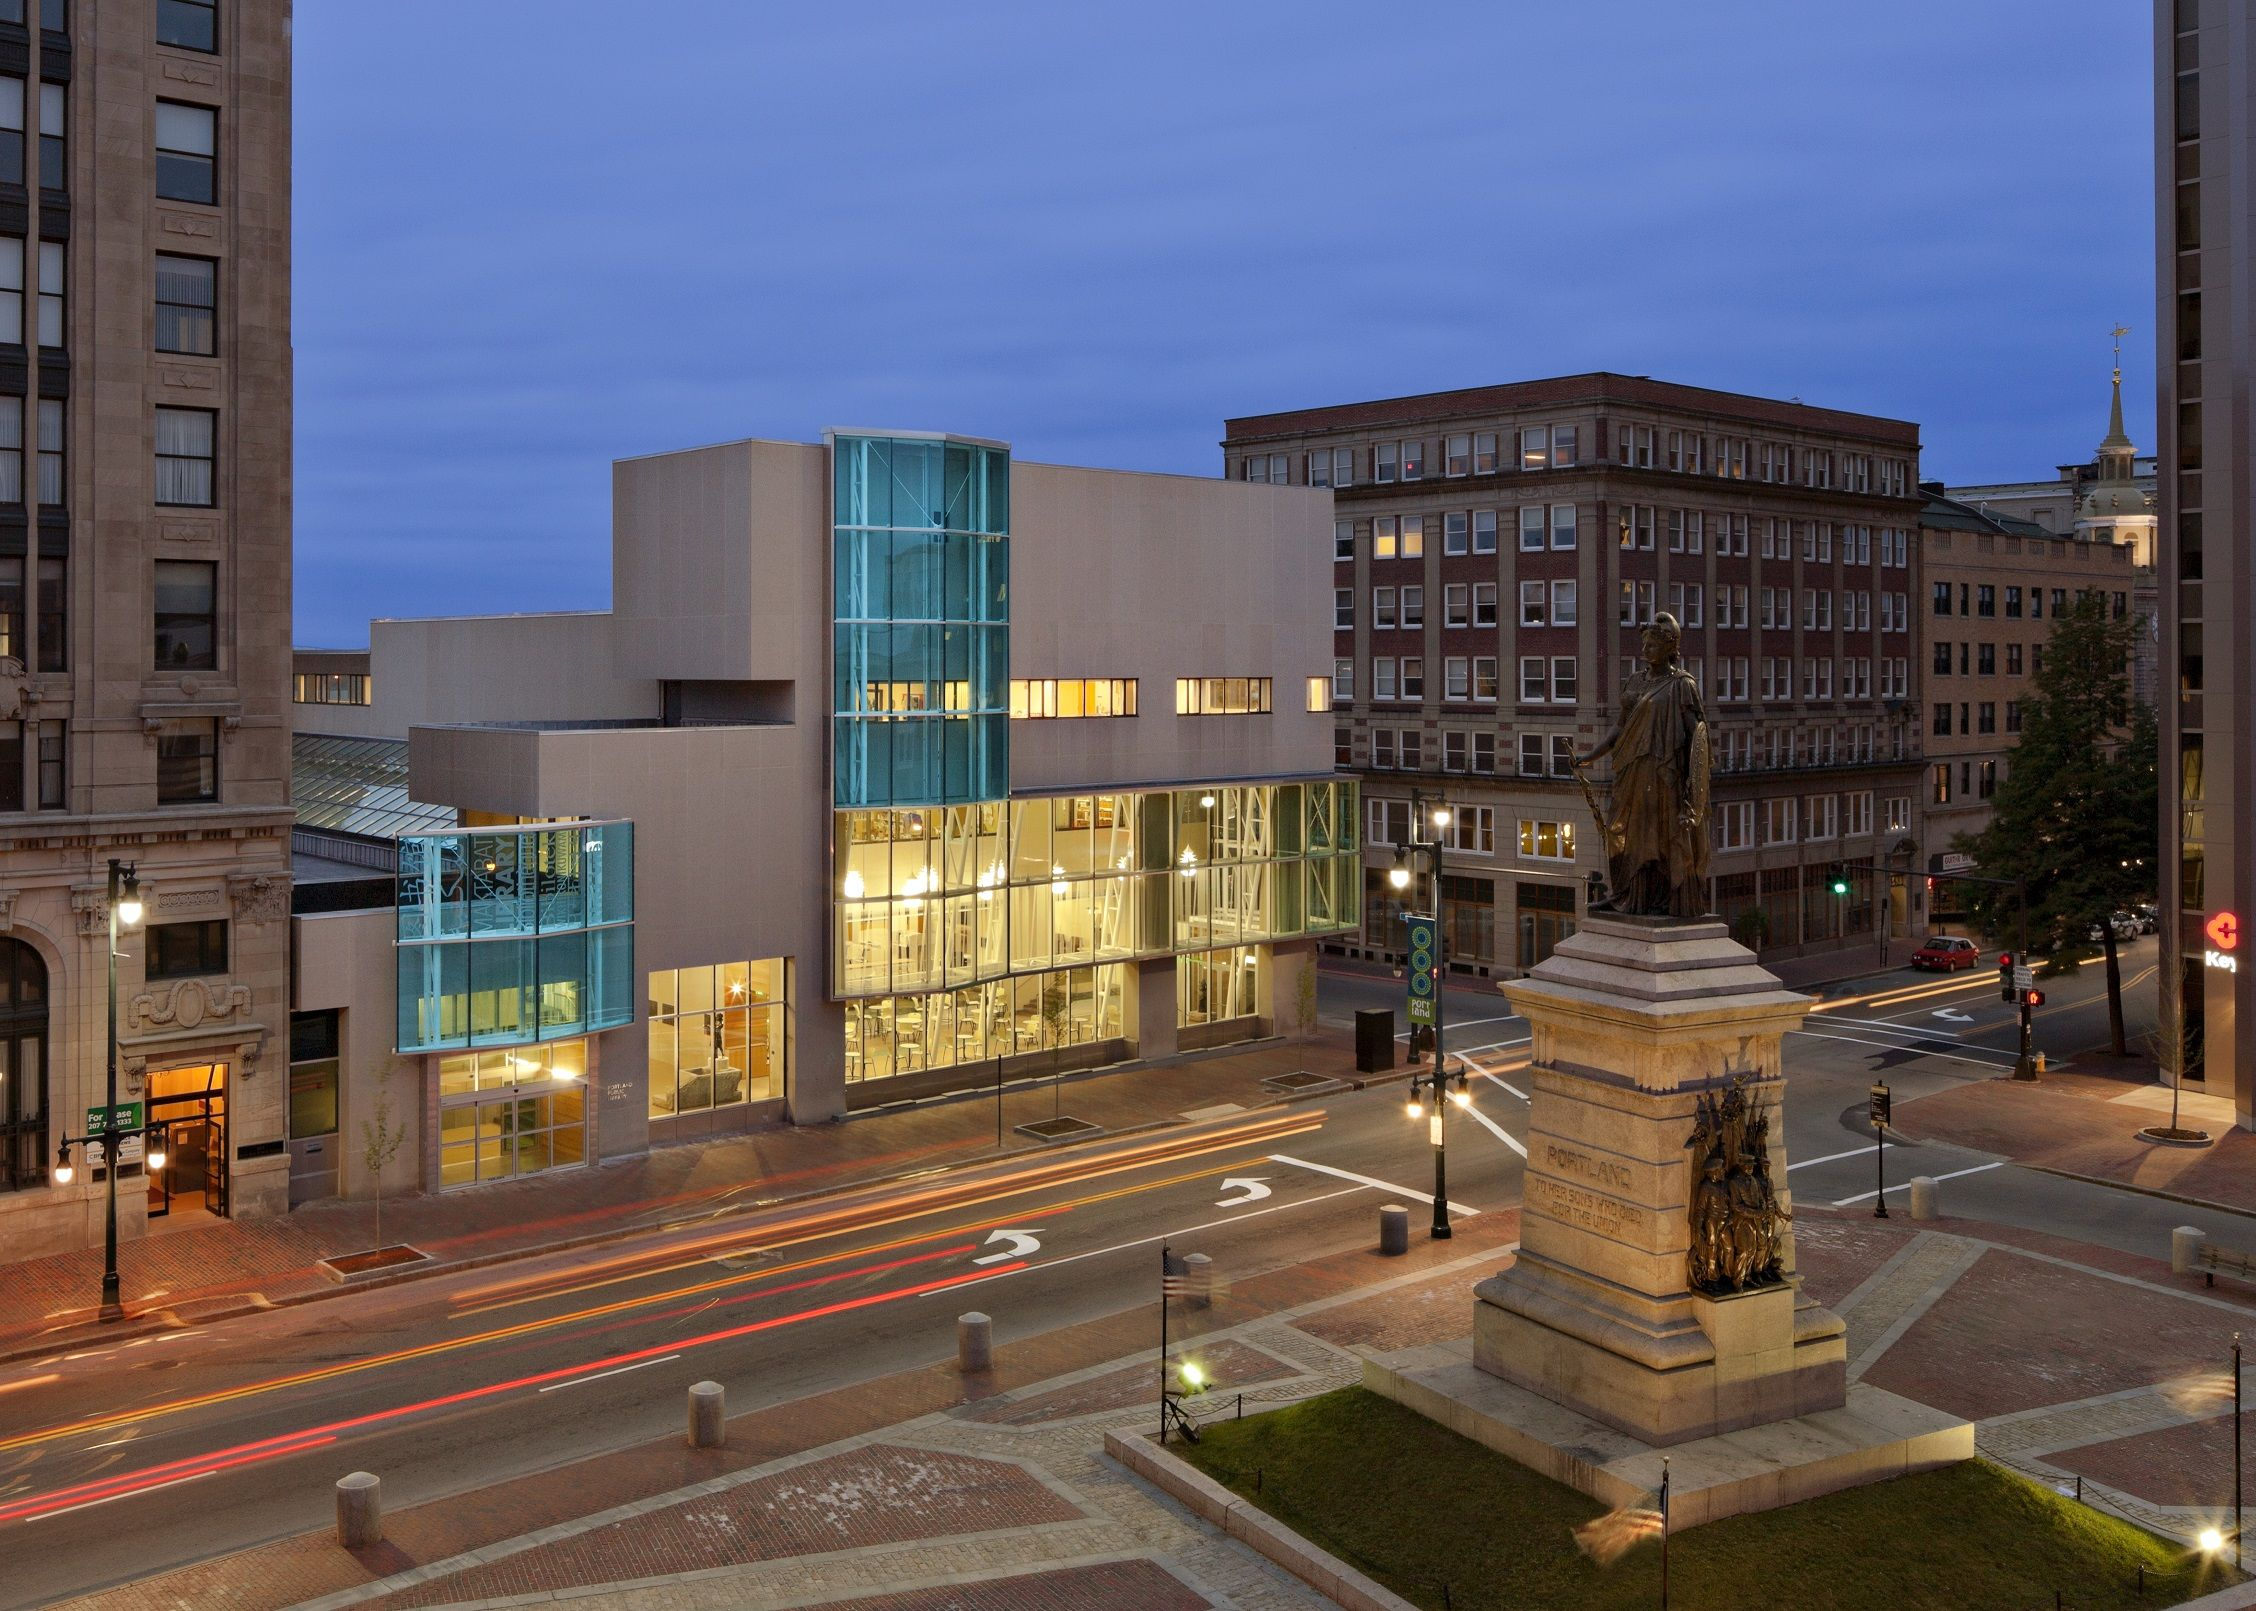 50 Best Libraries In America - State Libraries With Great Design